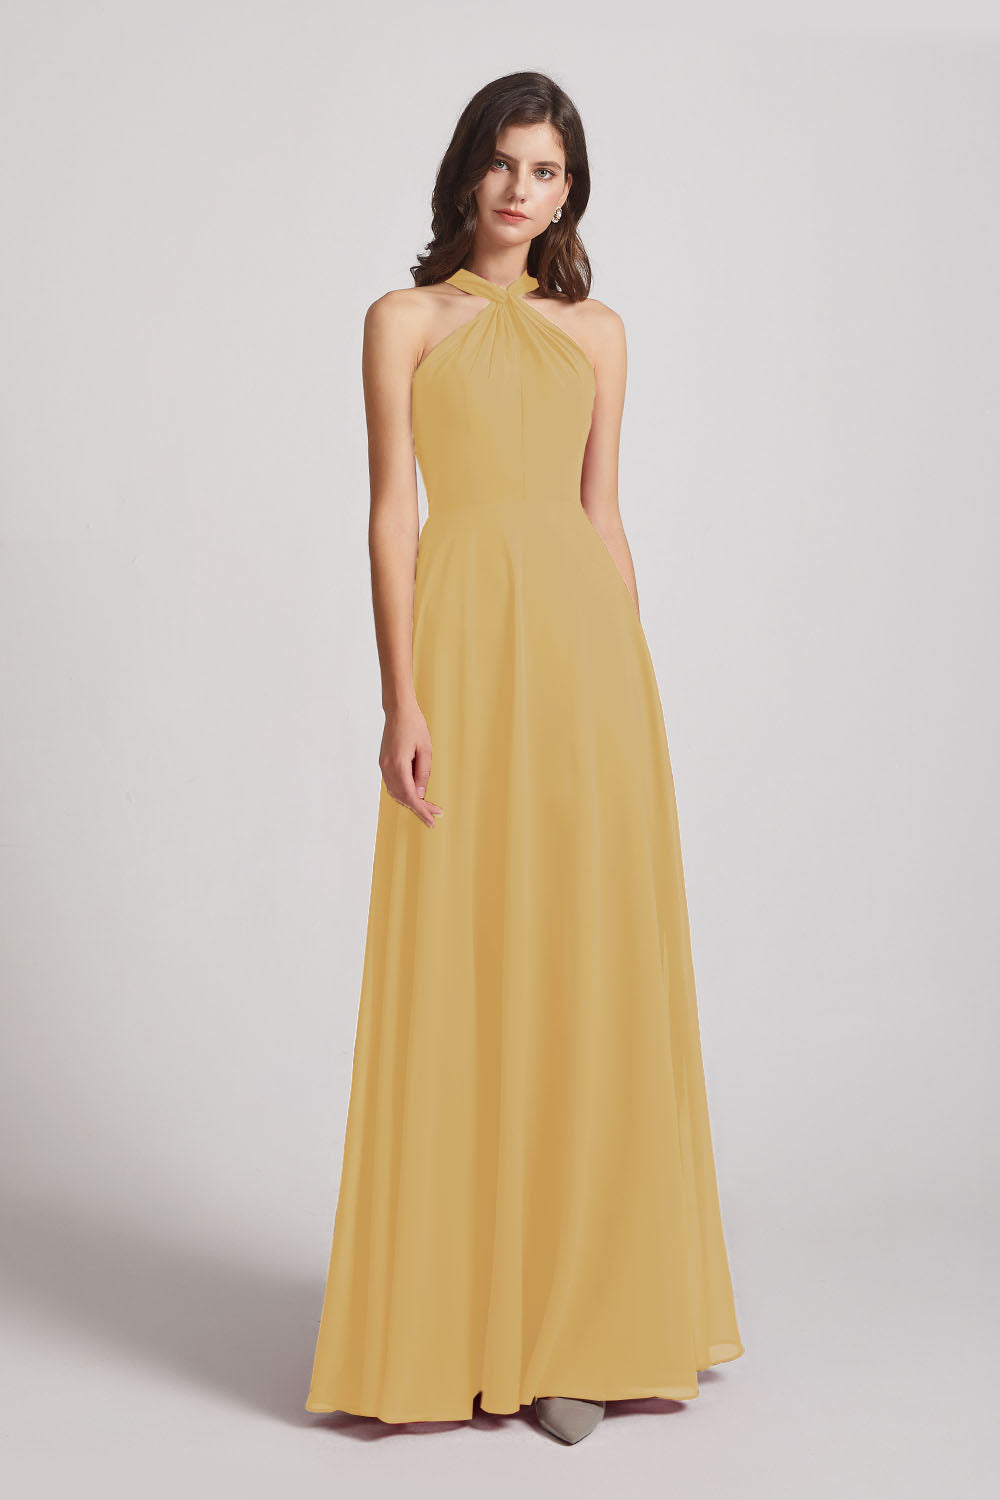 Alfa Bridal Gold Floor Length Chiffon Bridesmaid Dresses with Criss Cross Neckline (AF0113)